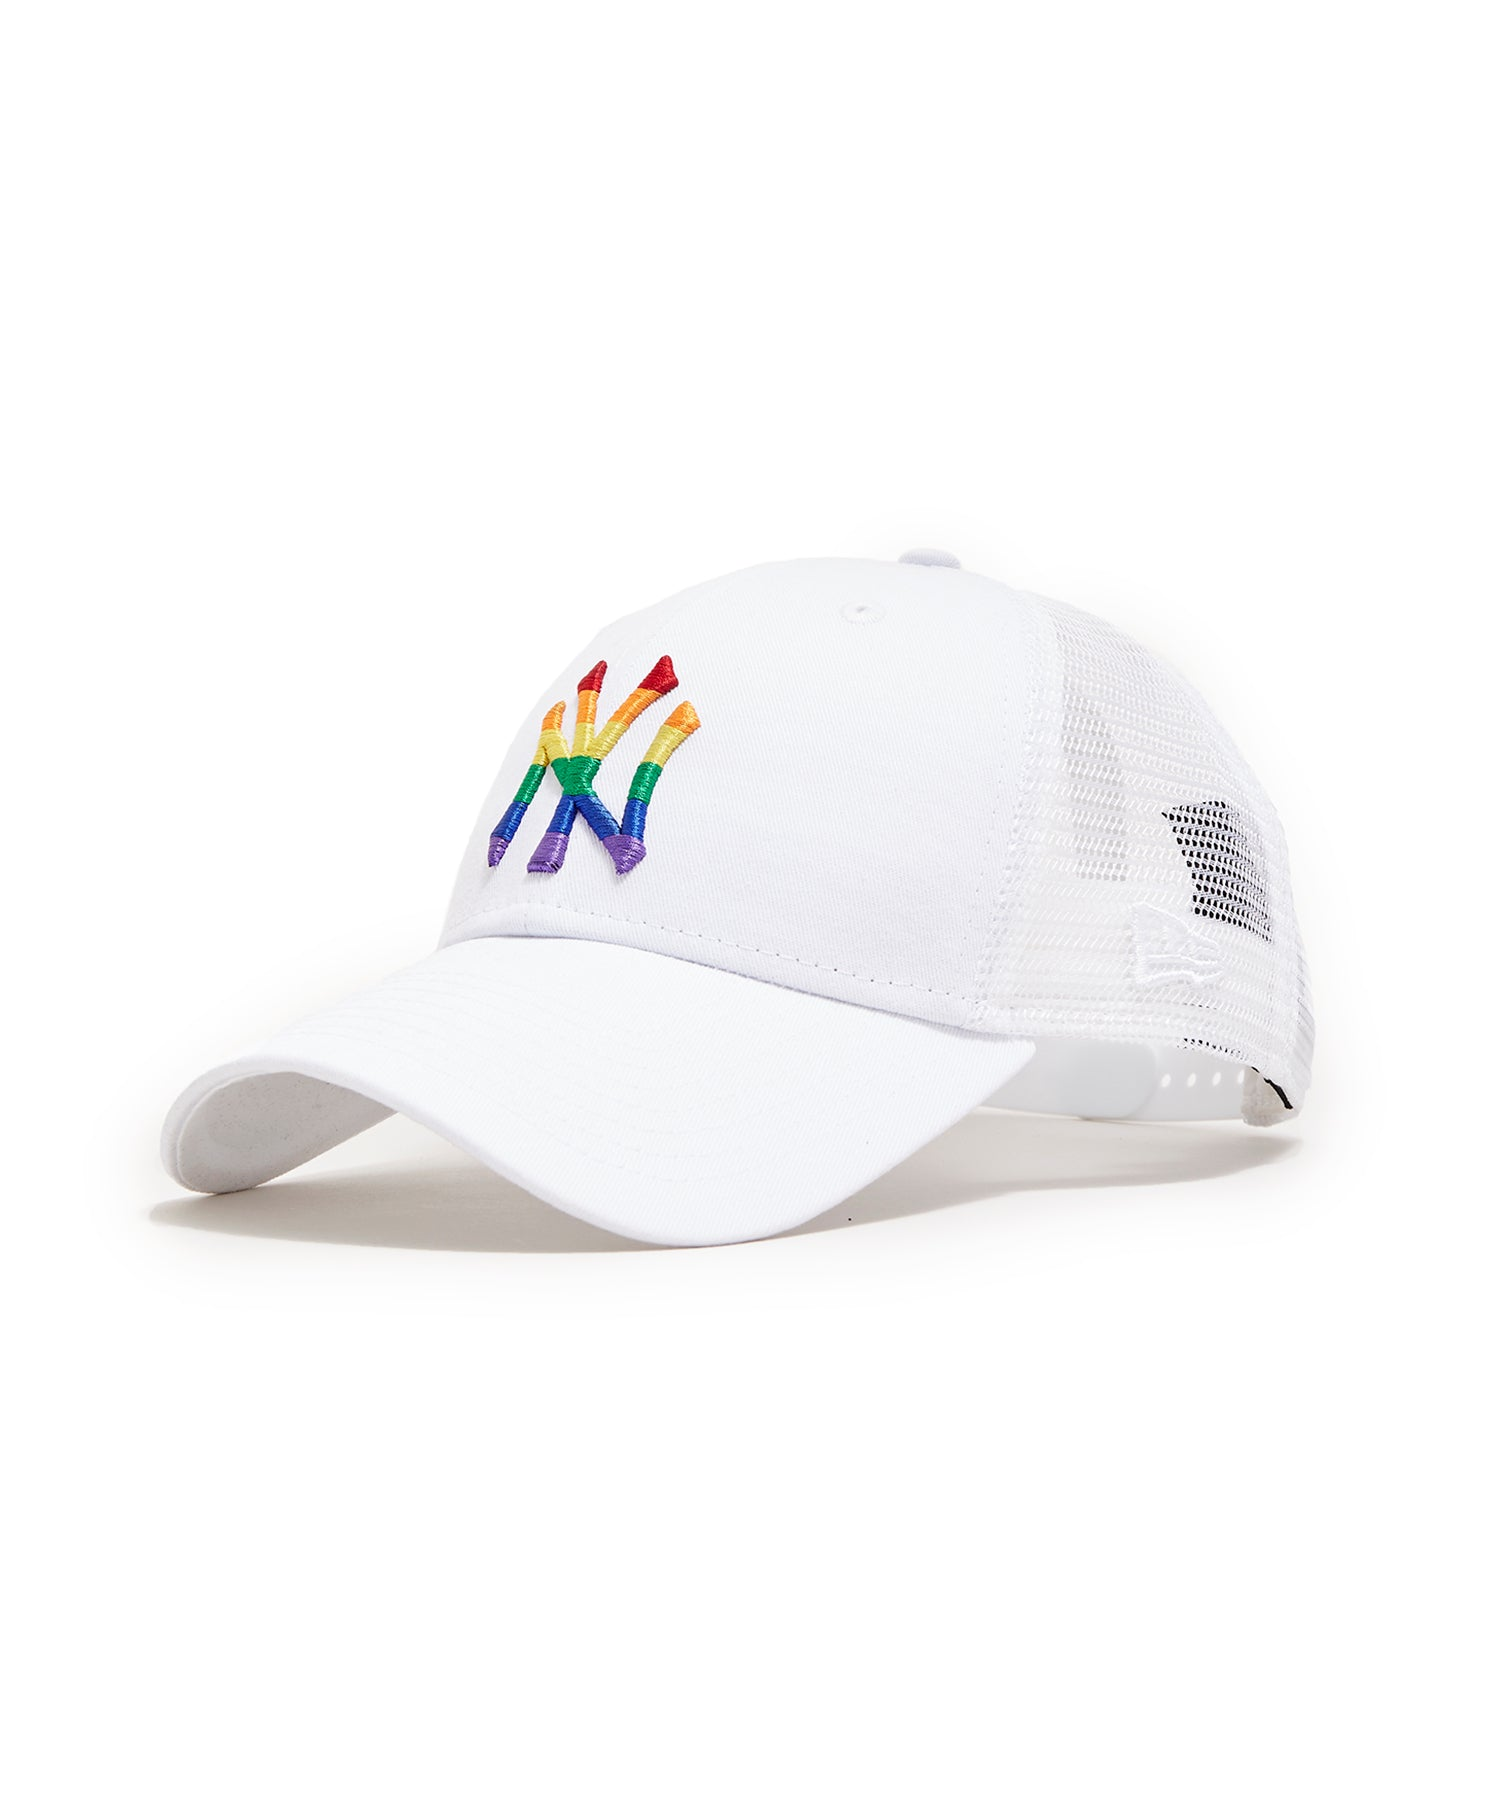 0ea38035f New Era + Todd Snyder Pride New York Yankees 9FIFTY Hat in White